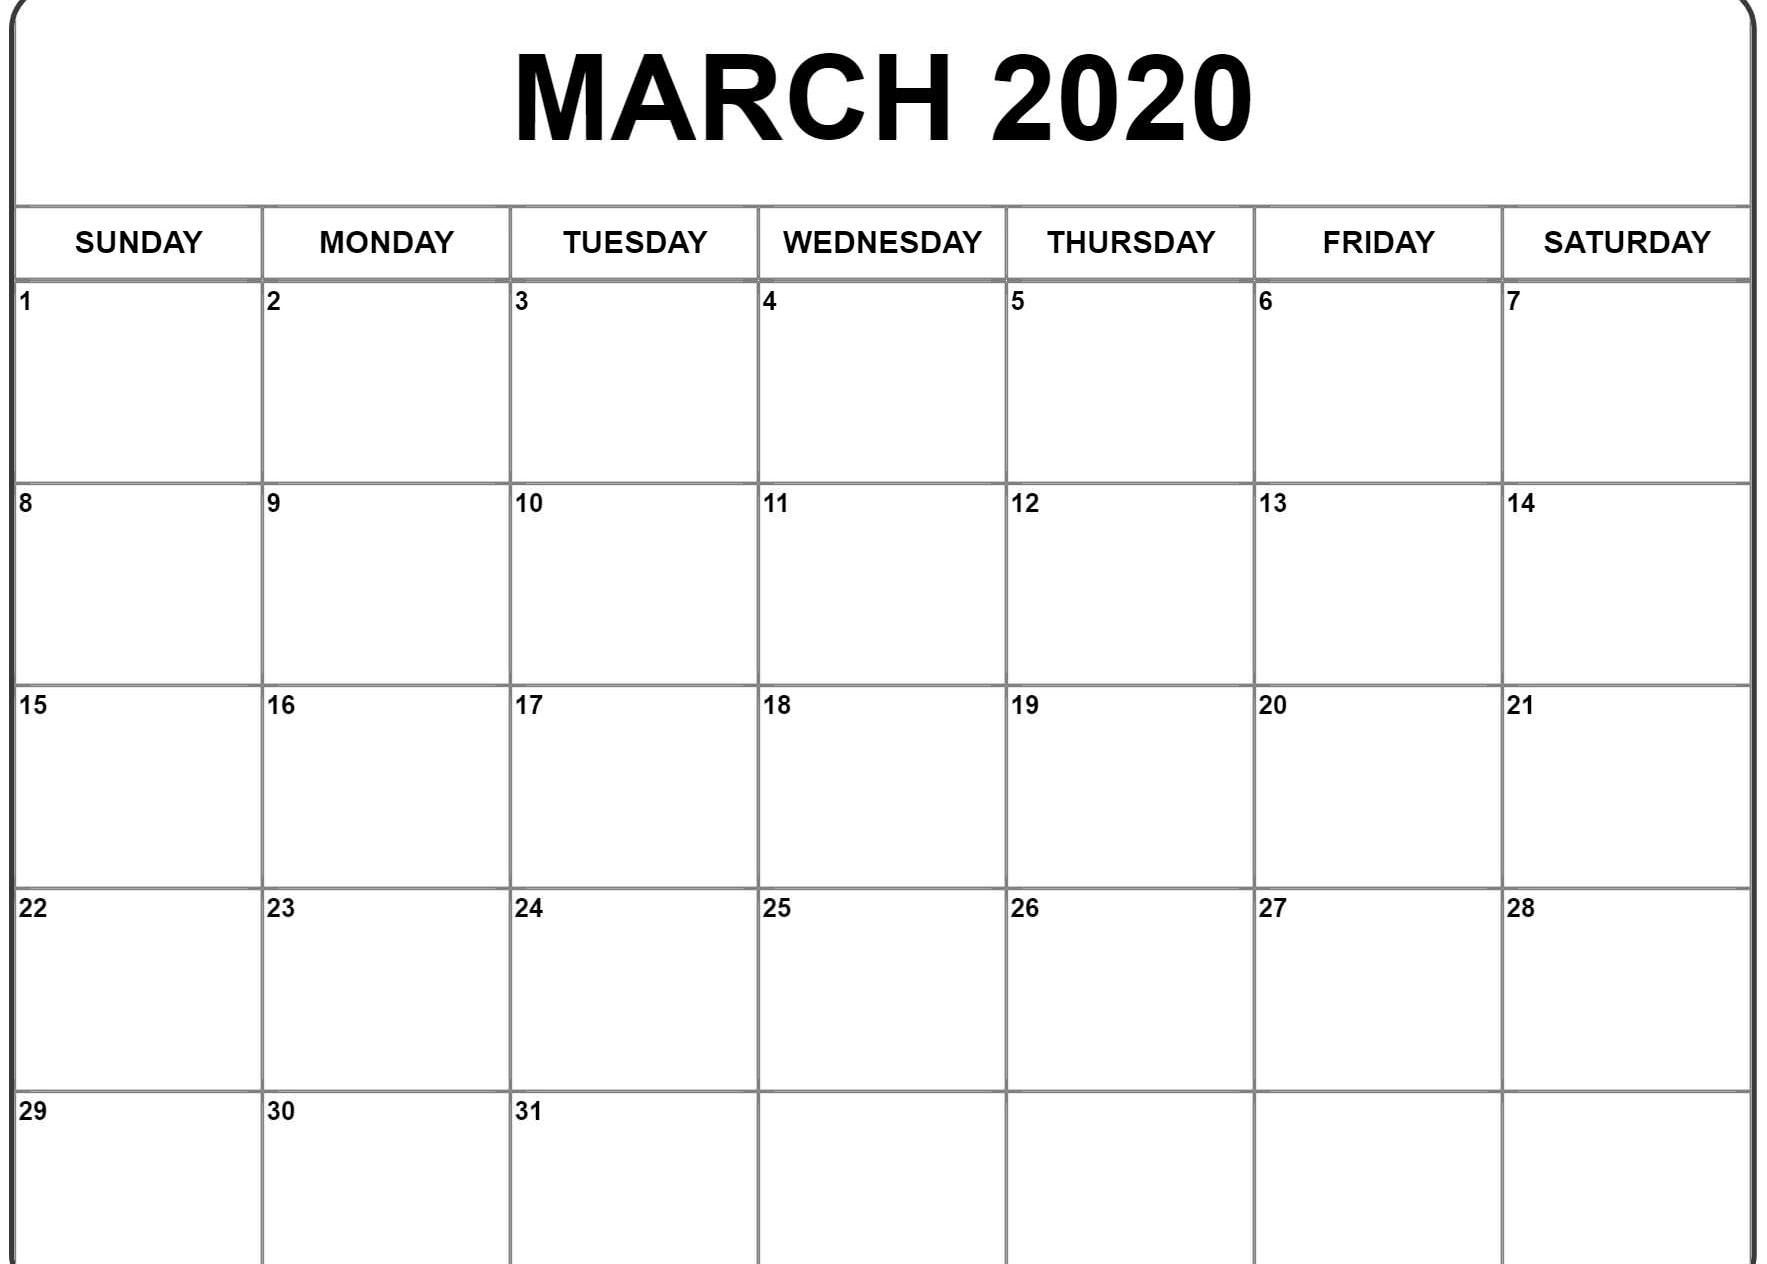 Free Fillable February Calendar 2020 Printable Editable With Notes